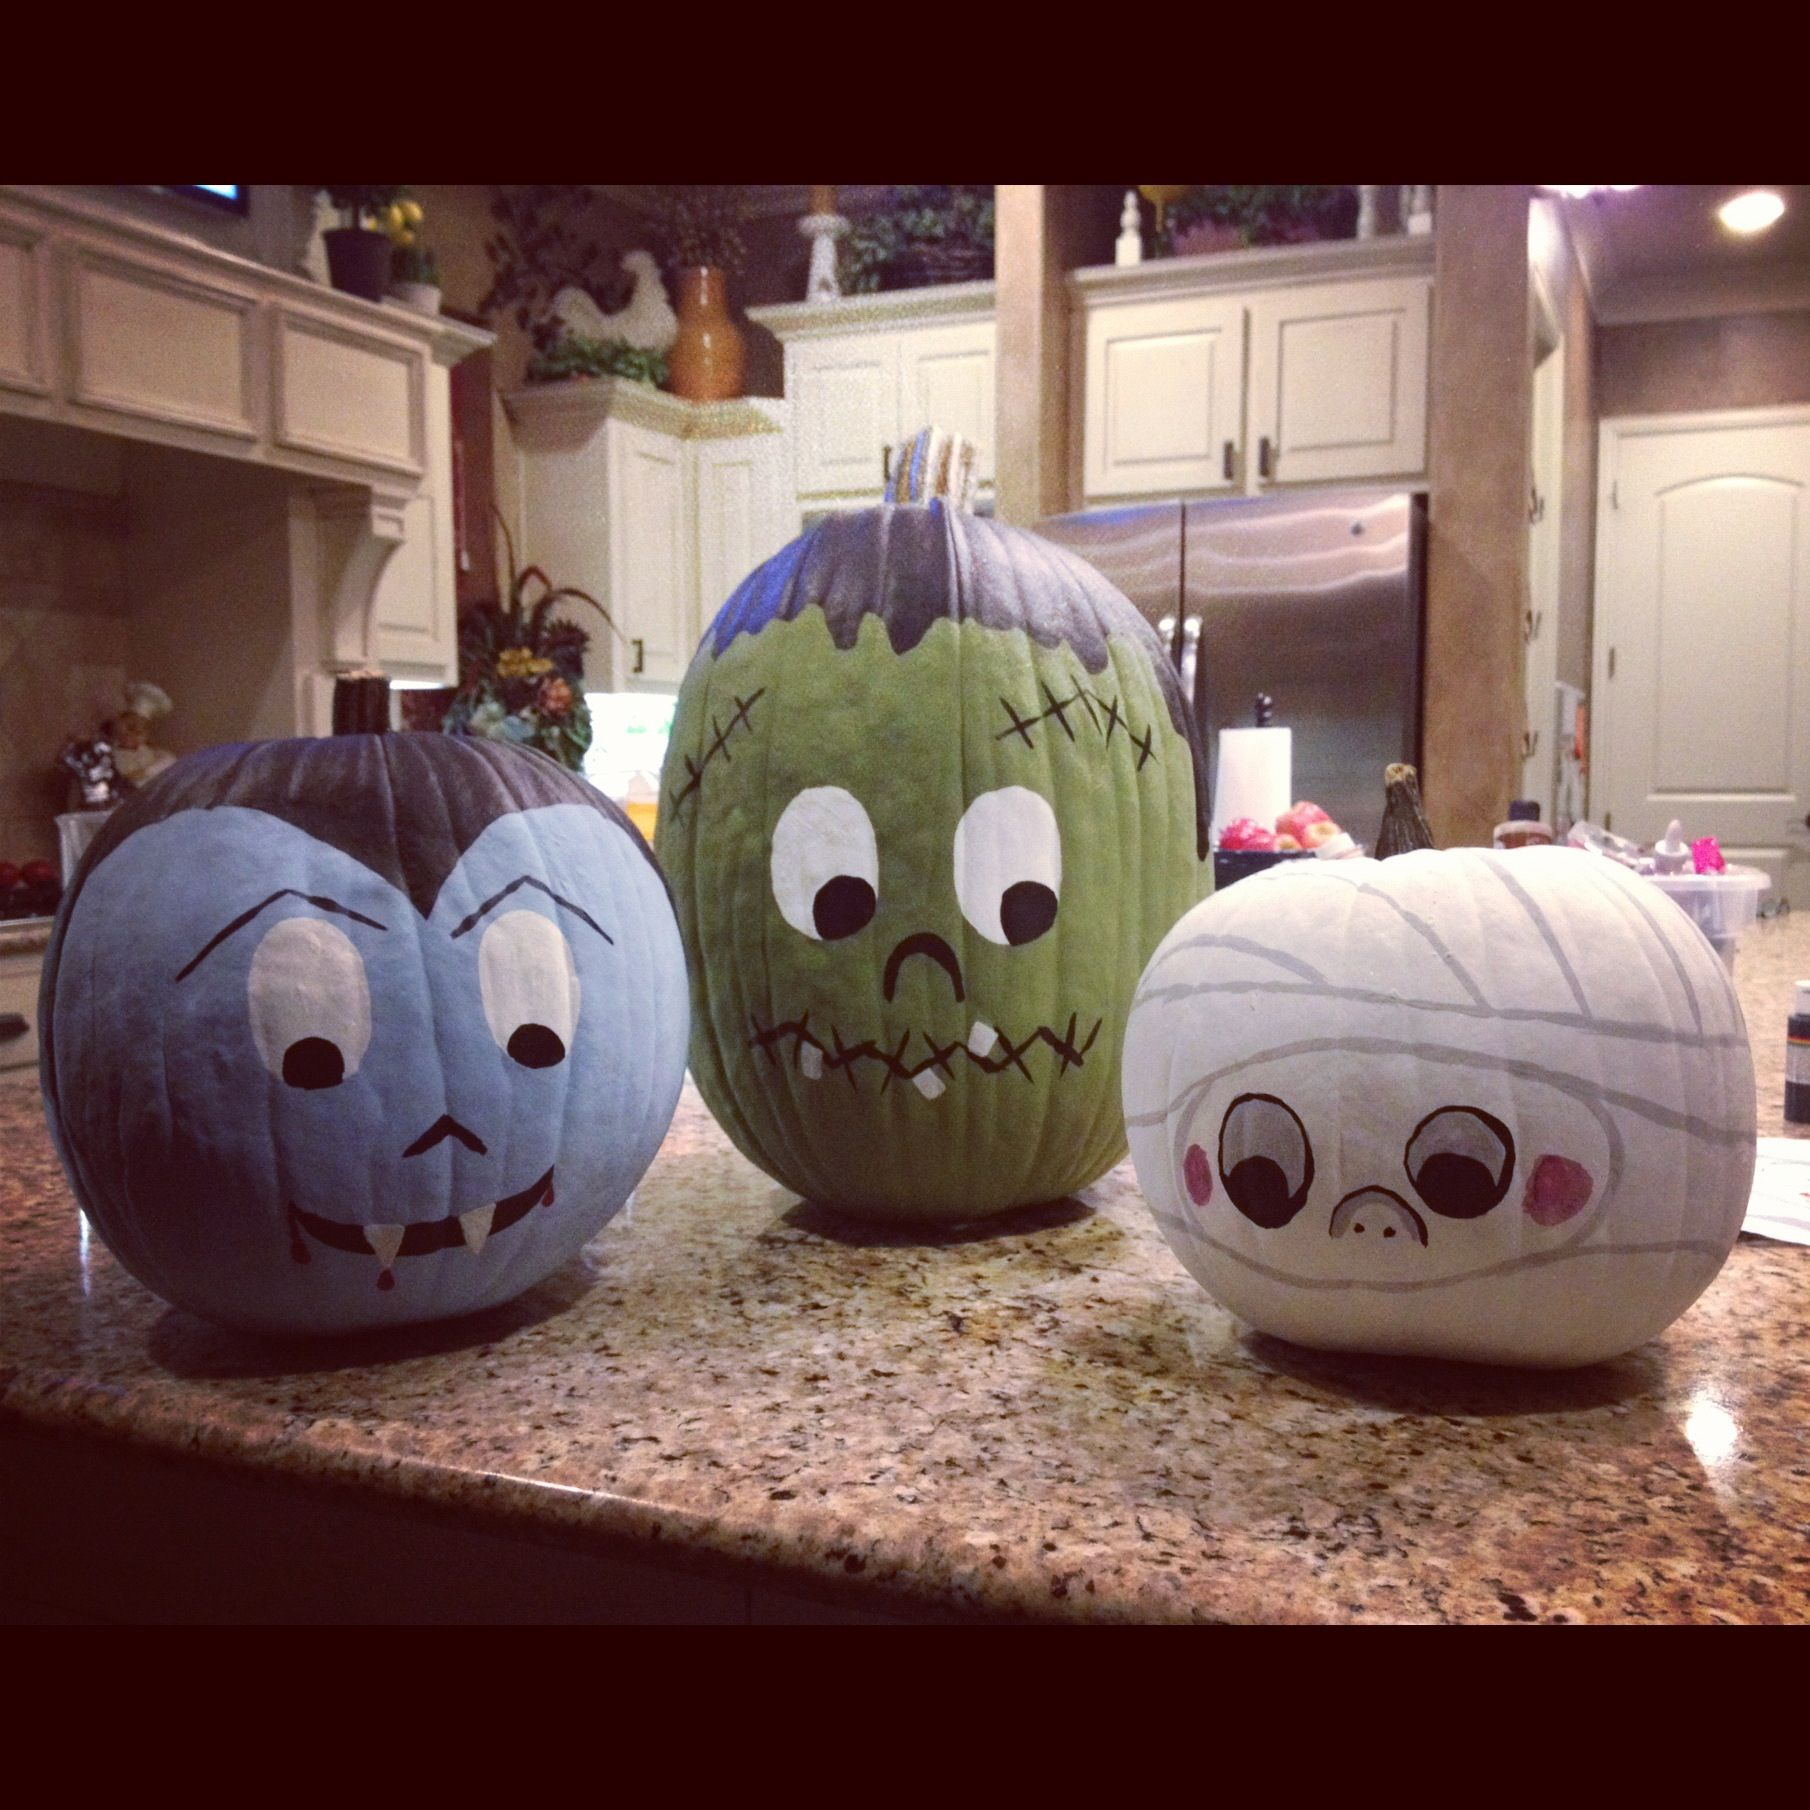 10 cute spooky and fun diy painted pumpkin ideas Funny pumpkin painting ideas